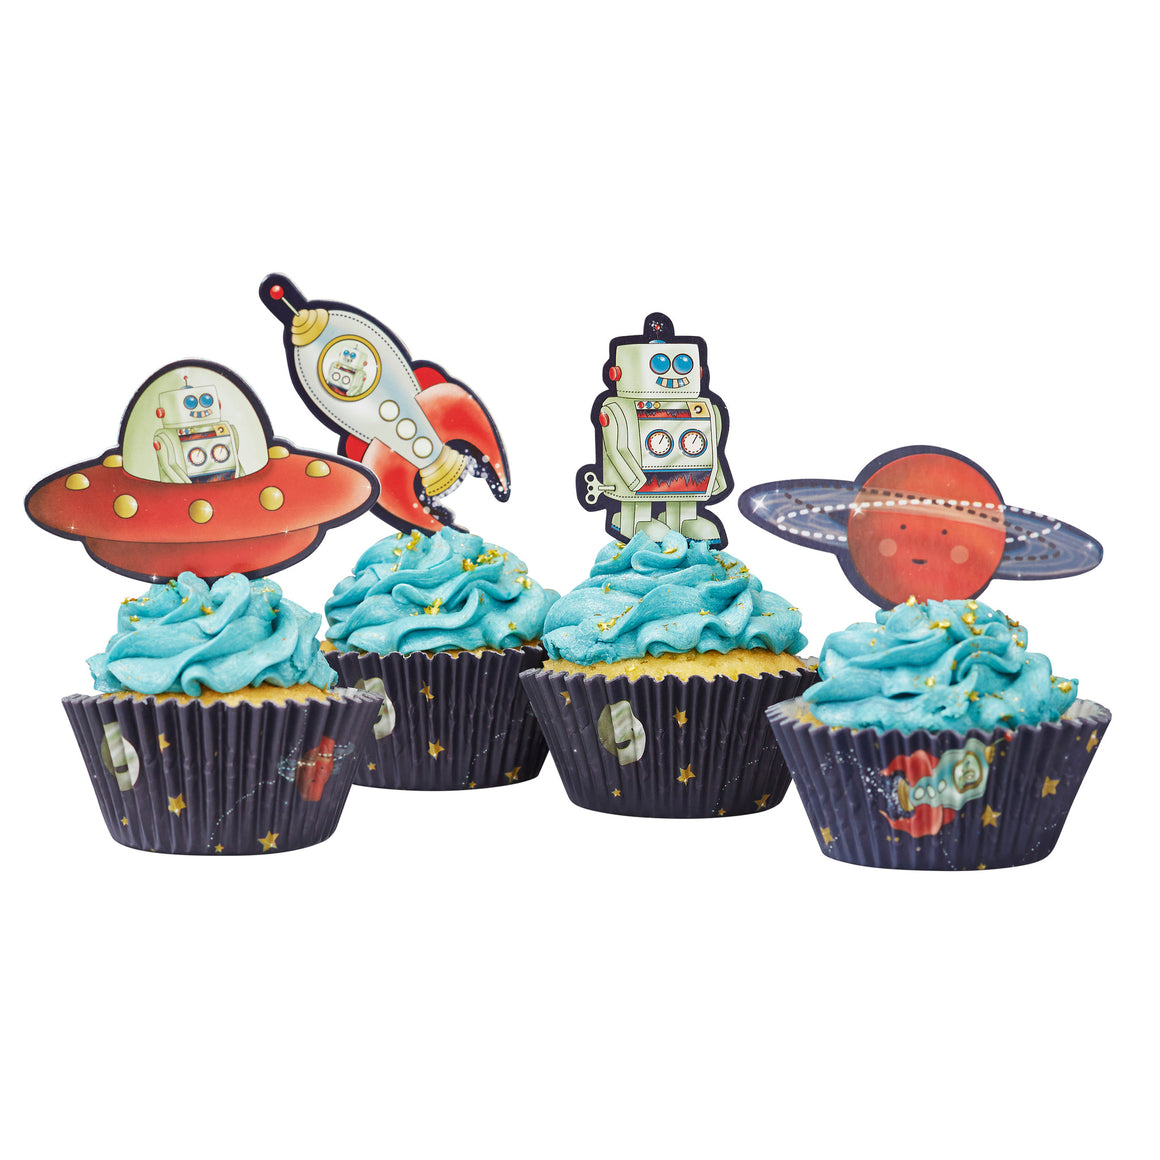 Space Adventure Party - 50 Cupcake Cases & 20 Toppers